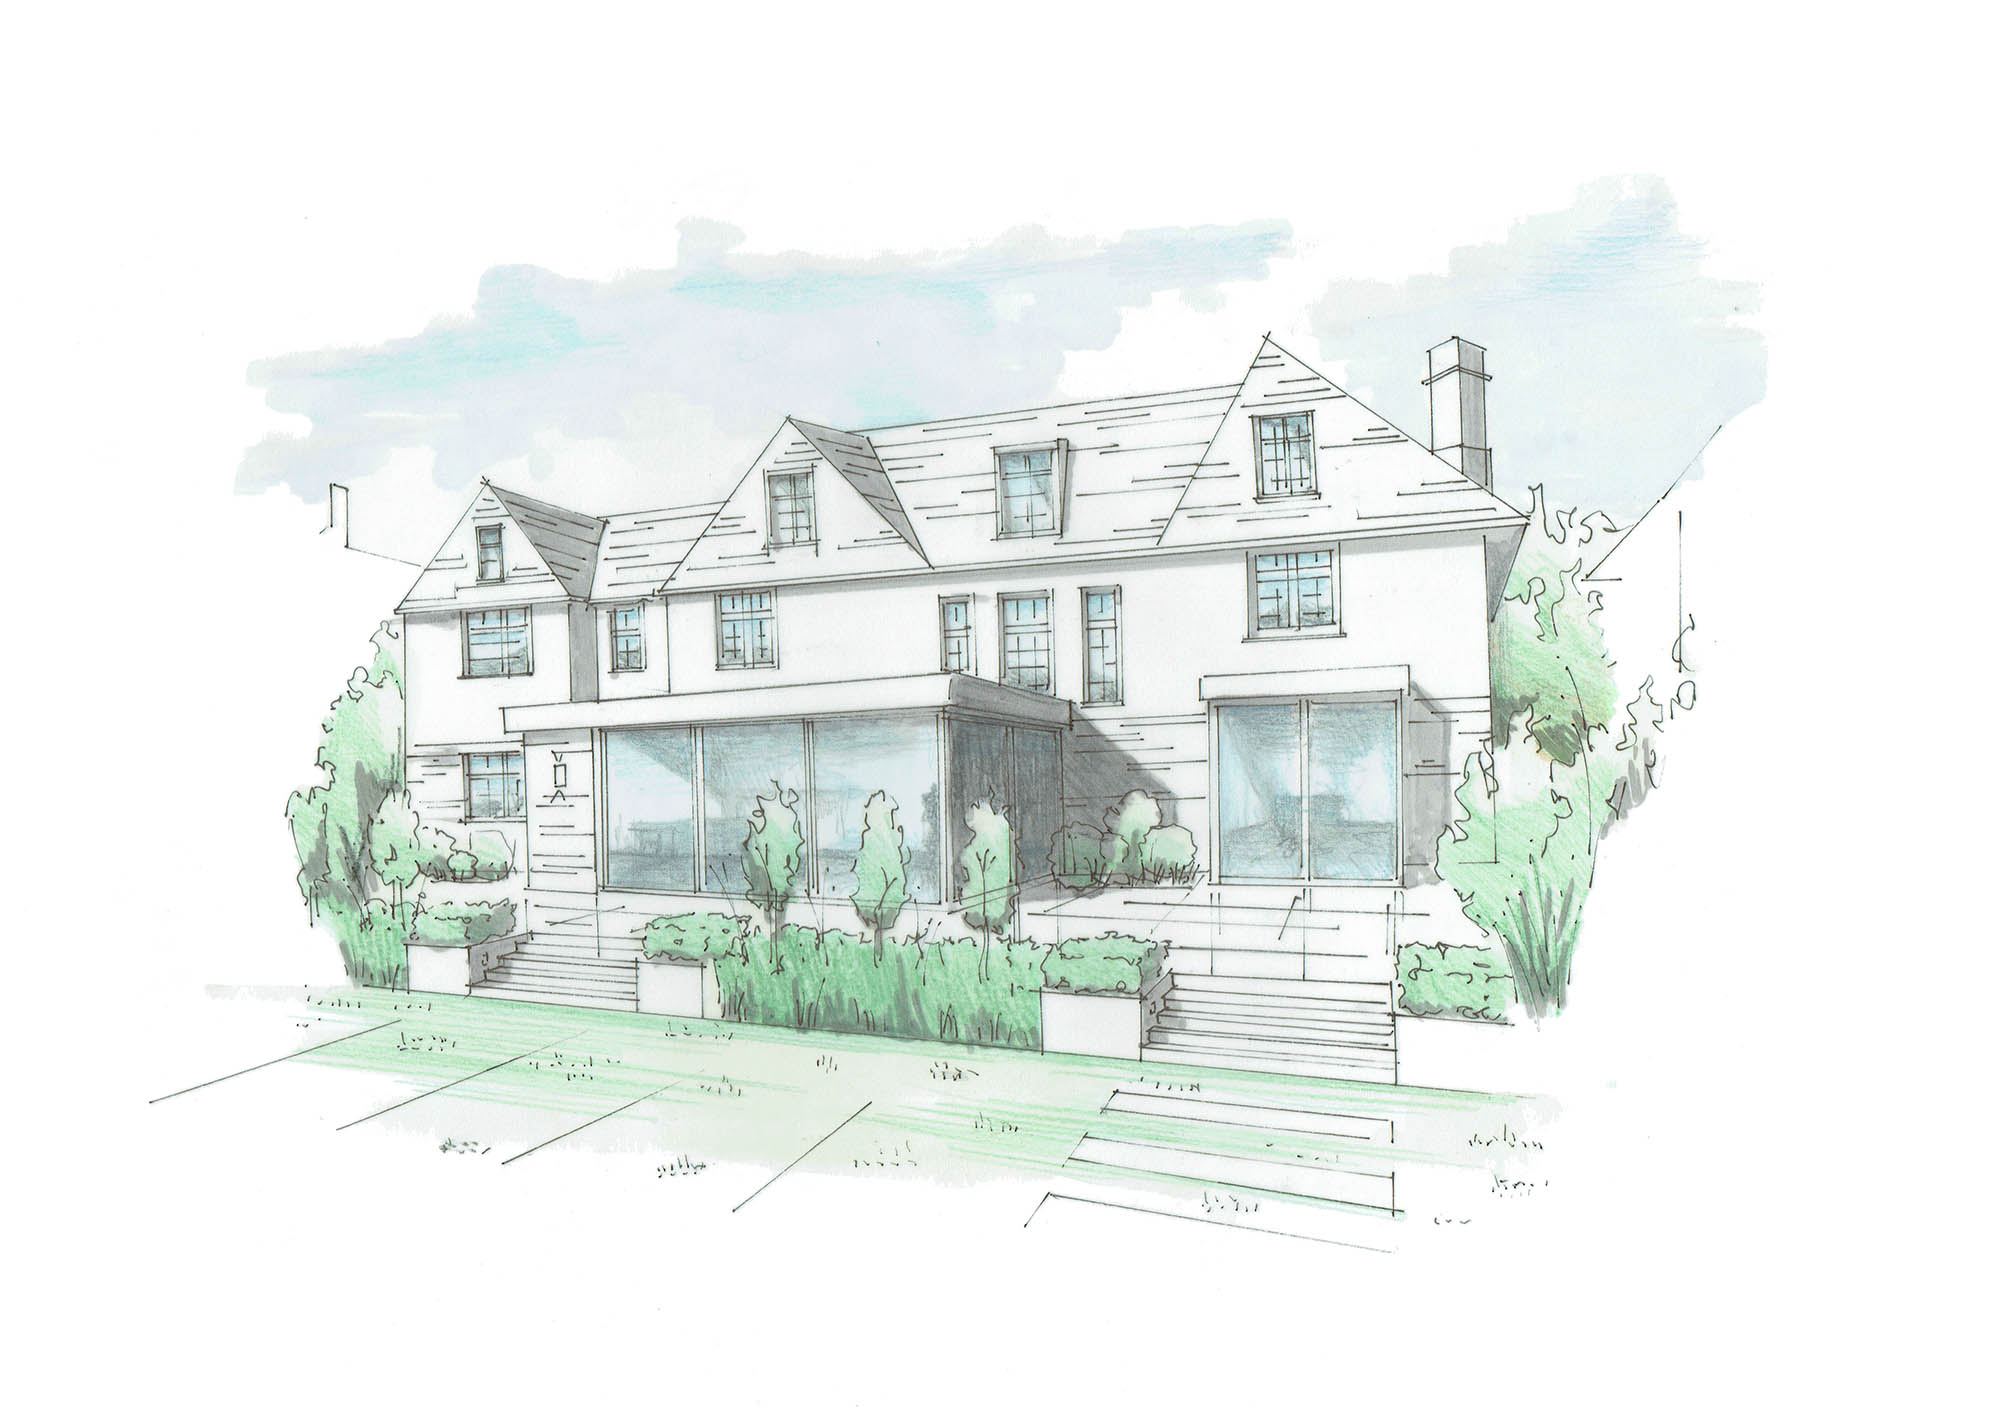 Rear elevation architect's sketch / design plan for the modern extension and restoration of a period home in Putney.